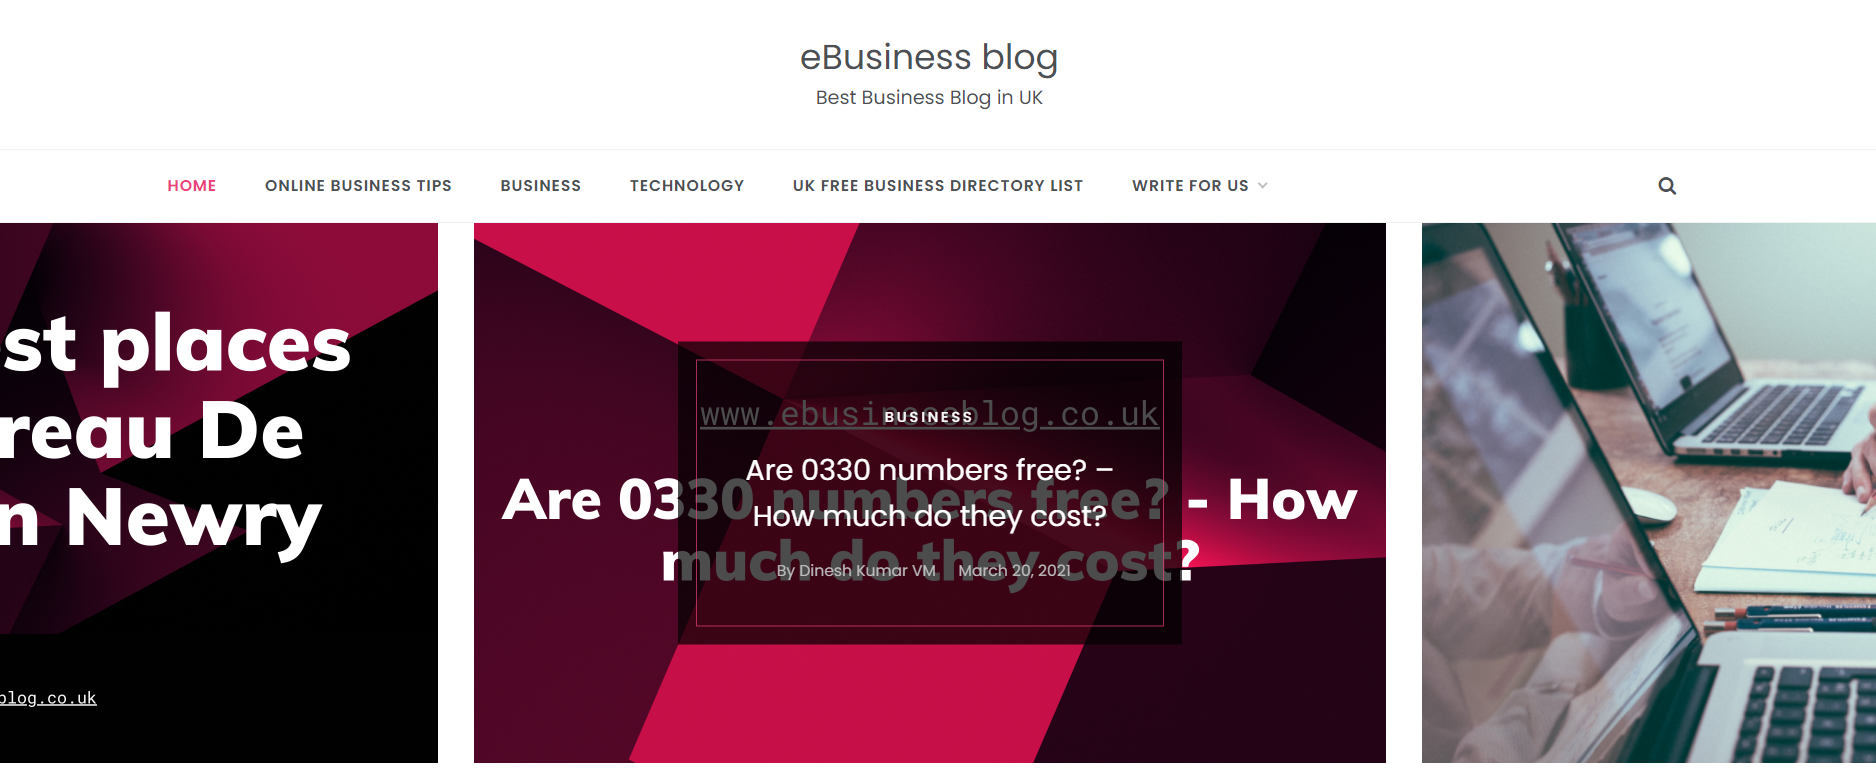 ebusiness-blog-for-guest-posts-about-e-commerce-and-online-businesses